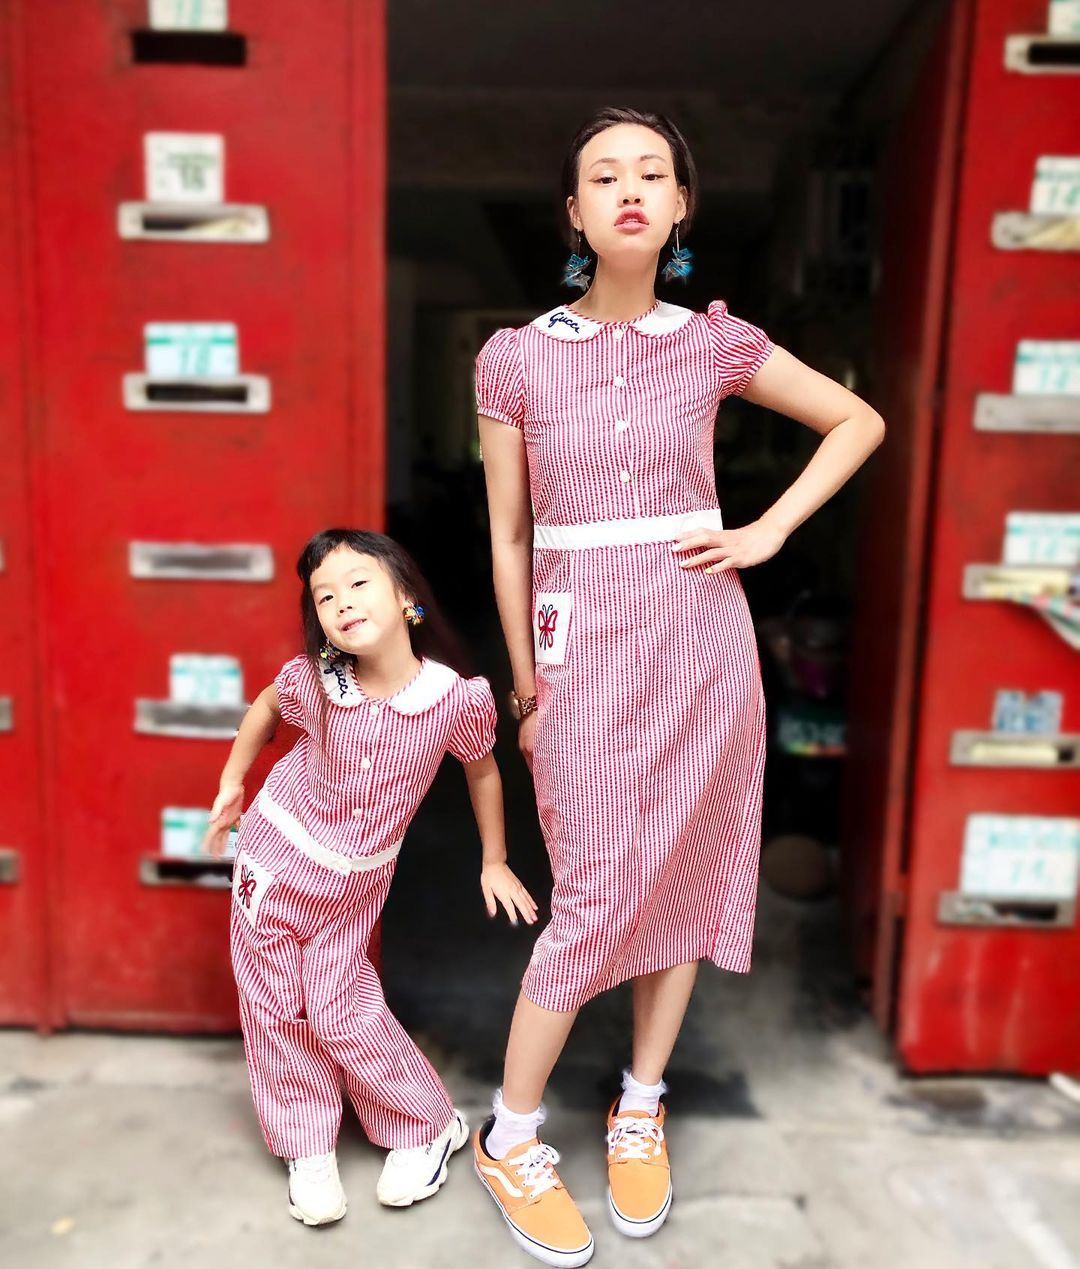 japanese street fashion - pink outfit